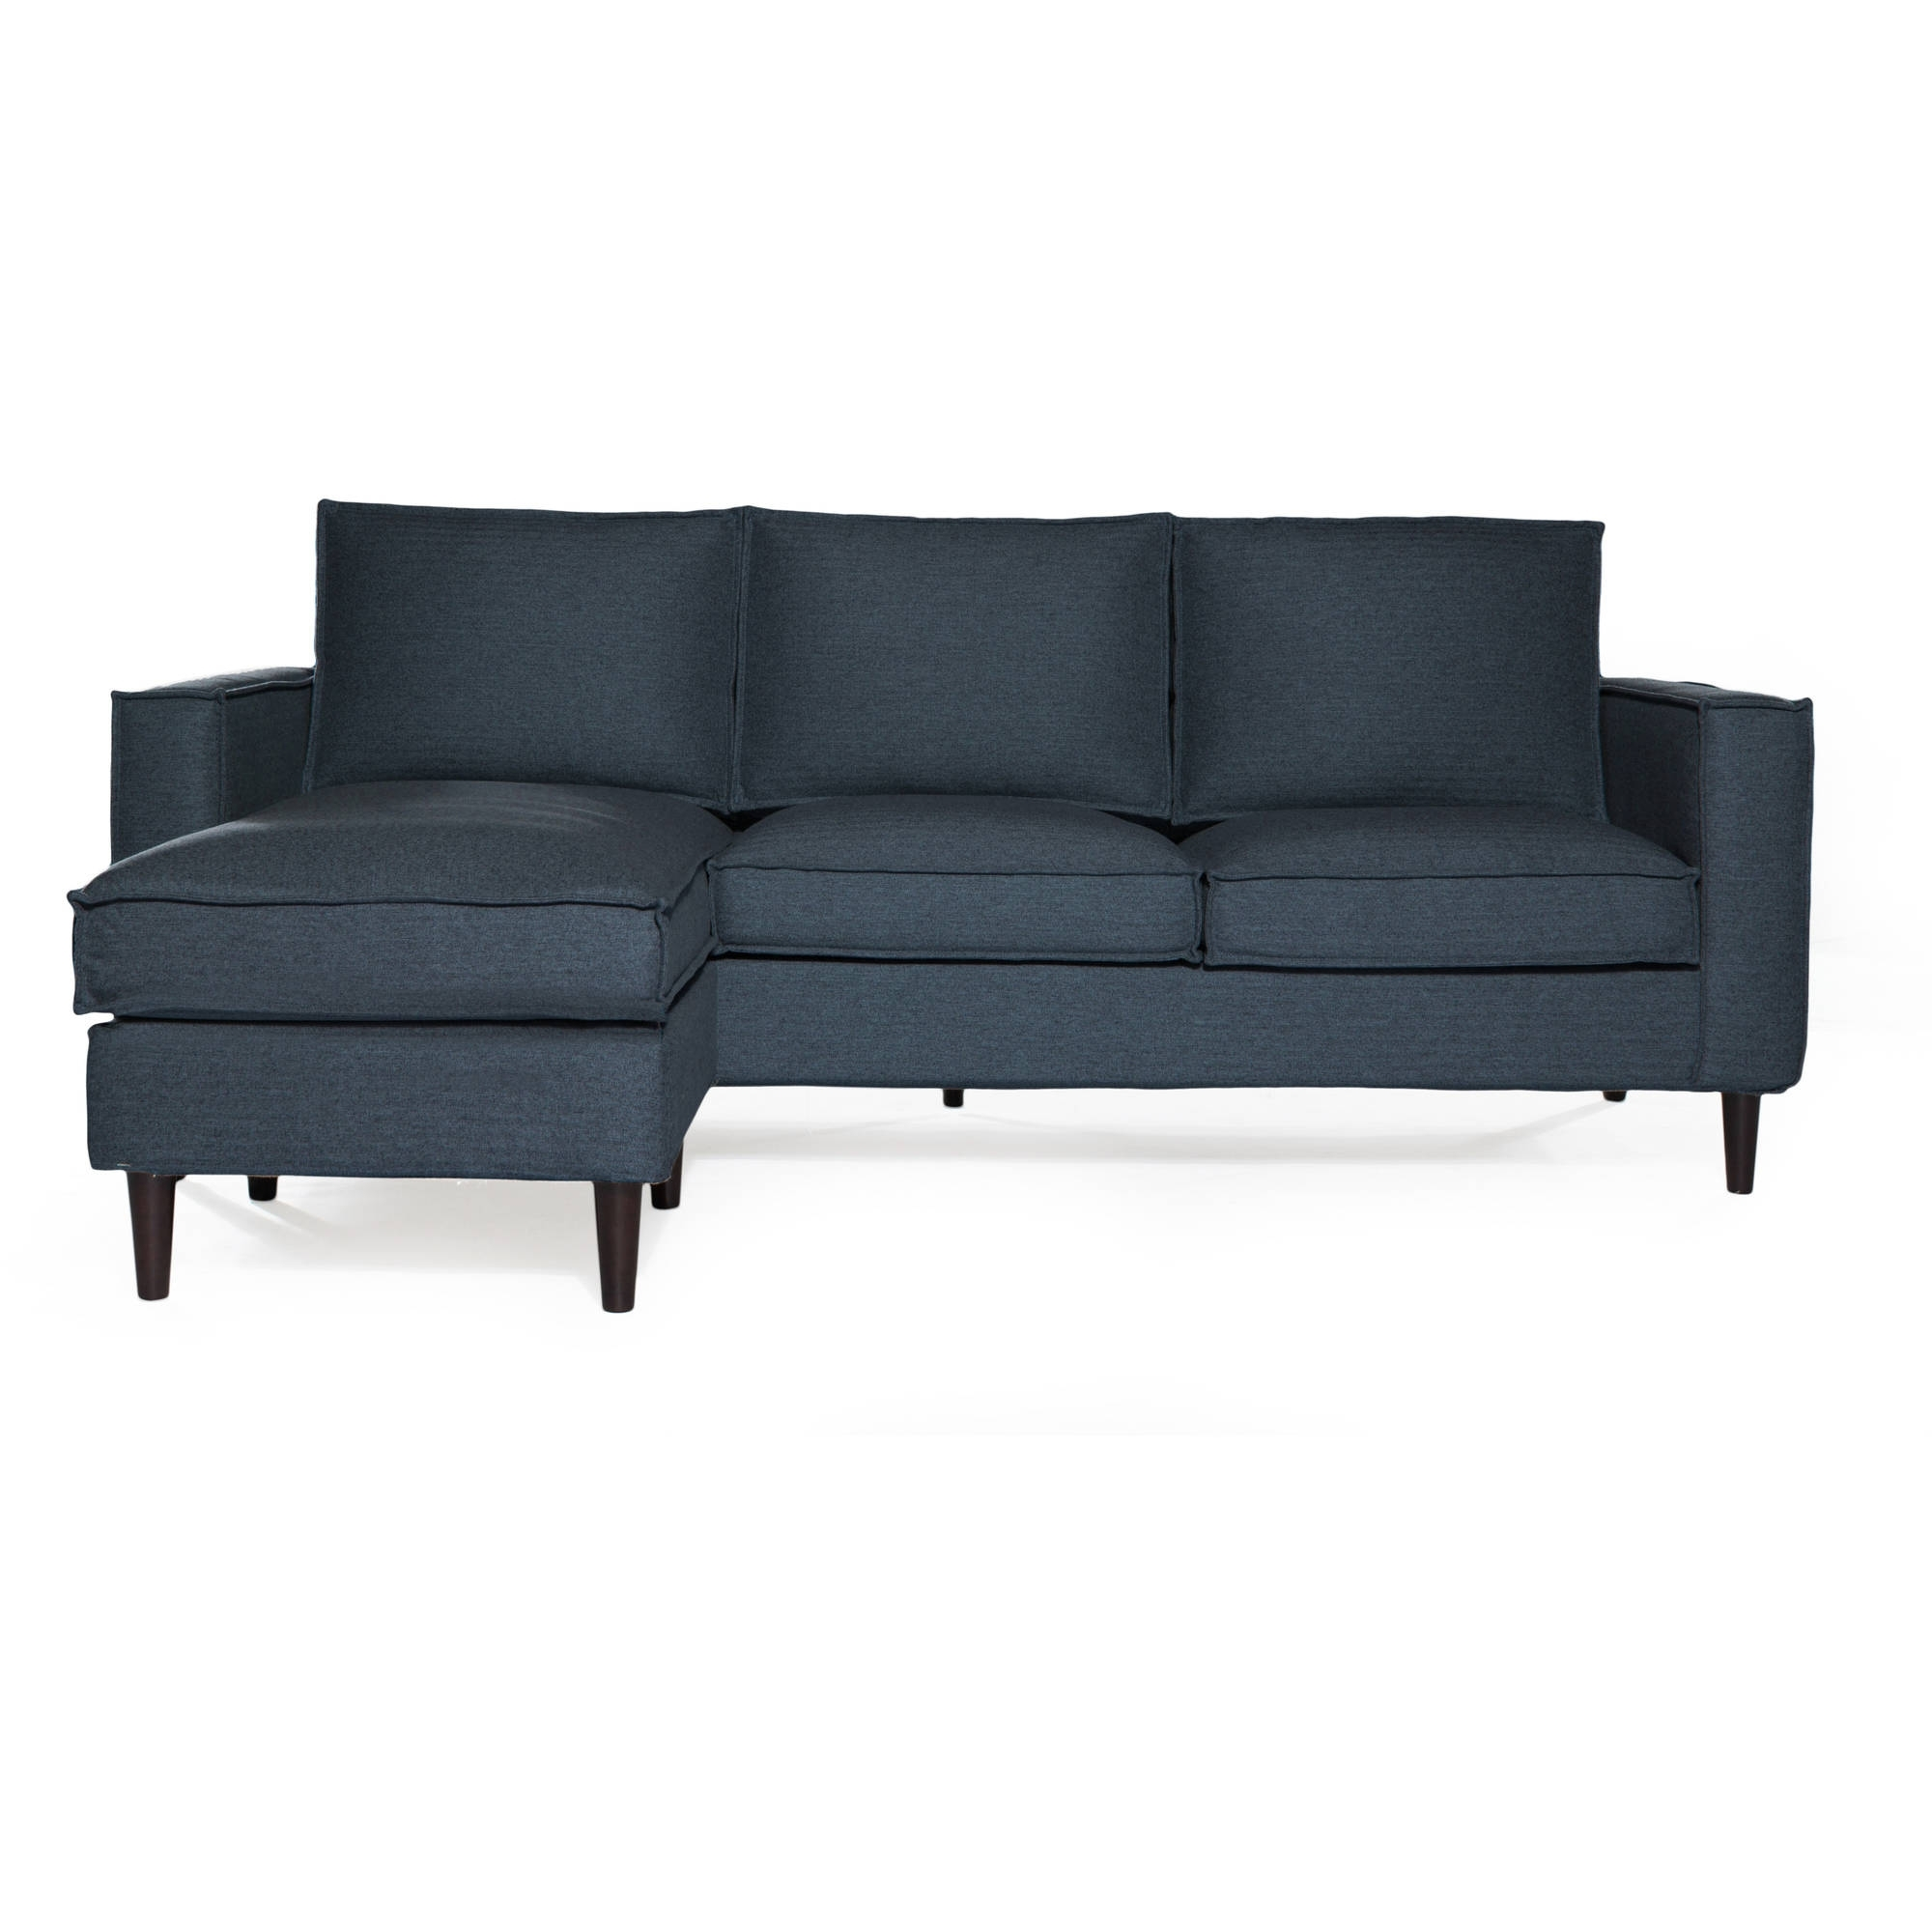 Wayfair Sectional Sofas In Recent Sofas & Couches – Walmart (View 12 of 20)